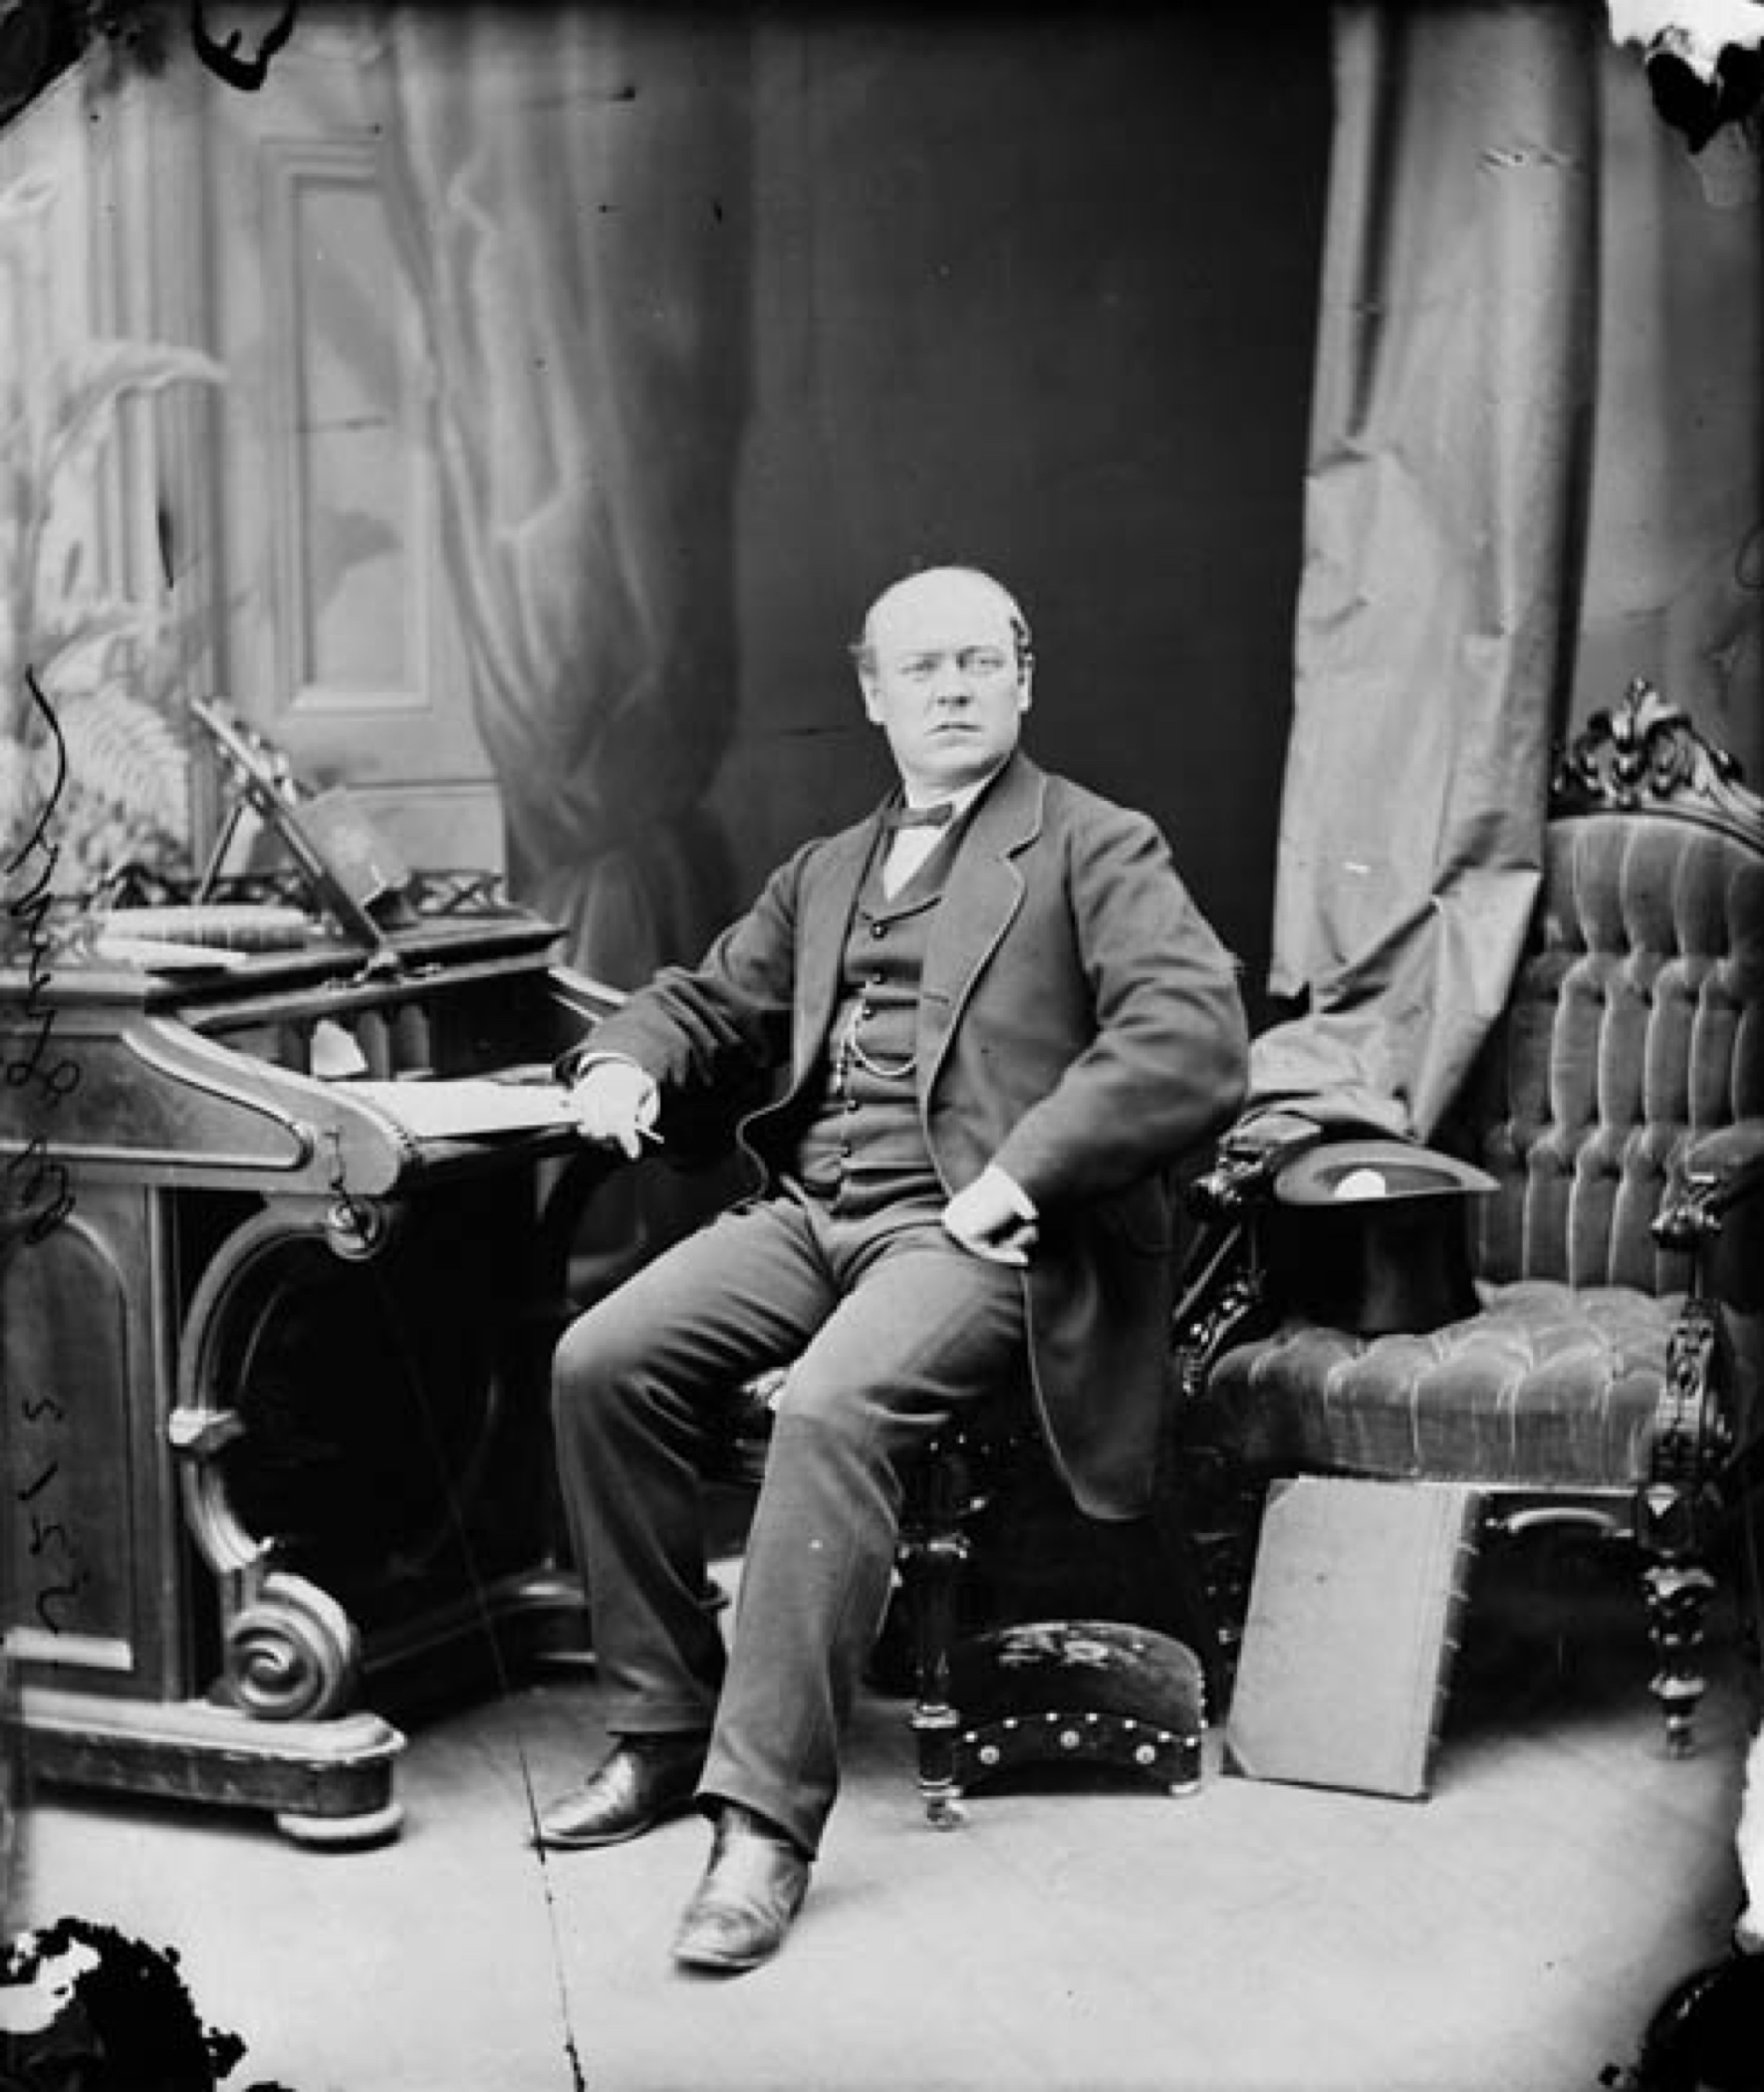 A black and white photo of Sir Thomas McGreevy, a middle-aged partially bald man sitting in an upholstered chair with one arm resting on the desk; he is facing the camera. The style of the dark formal clothing looks mid-Victorian; a top hat rests upside down on another upholstered chair next to the sitter. Draperies hang in the background, where there is a painted backdrop of a door and more drapery.